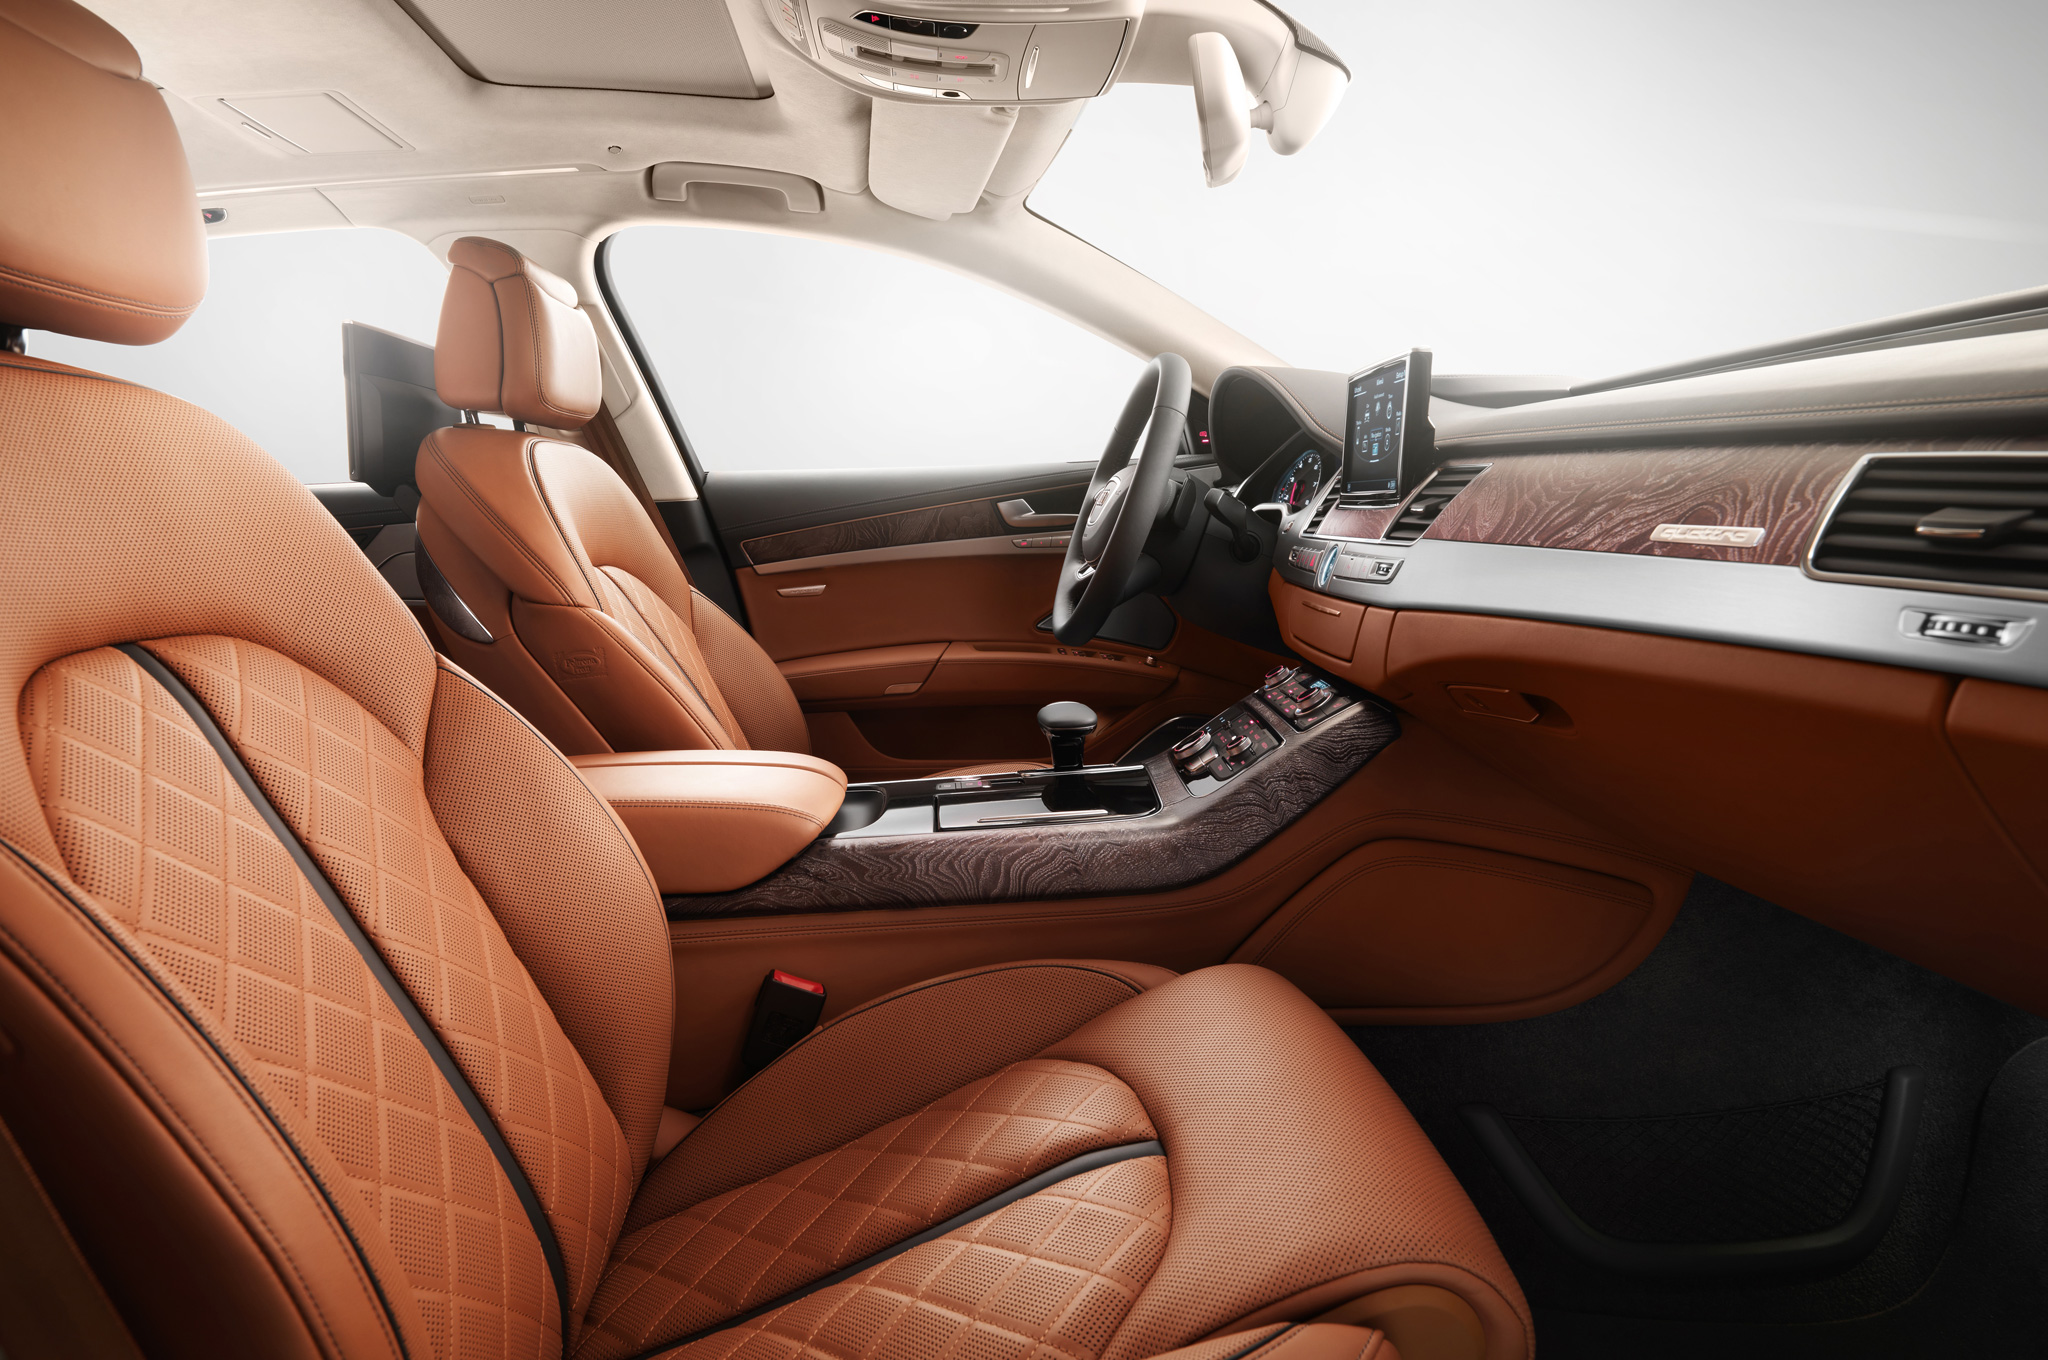 Ultra-Limited 2015 Audi A8 Exclusive Concept Gets Special Interior